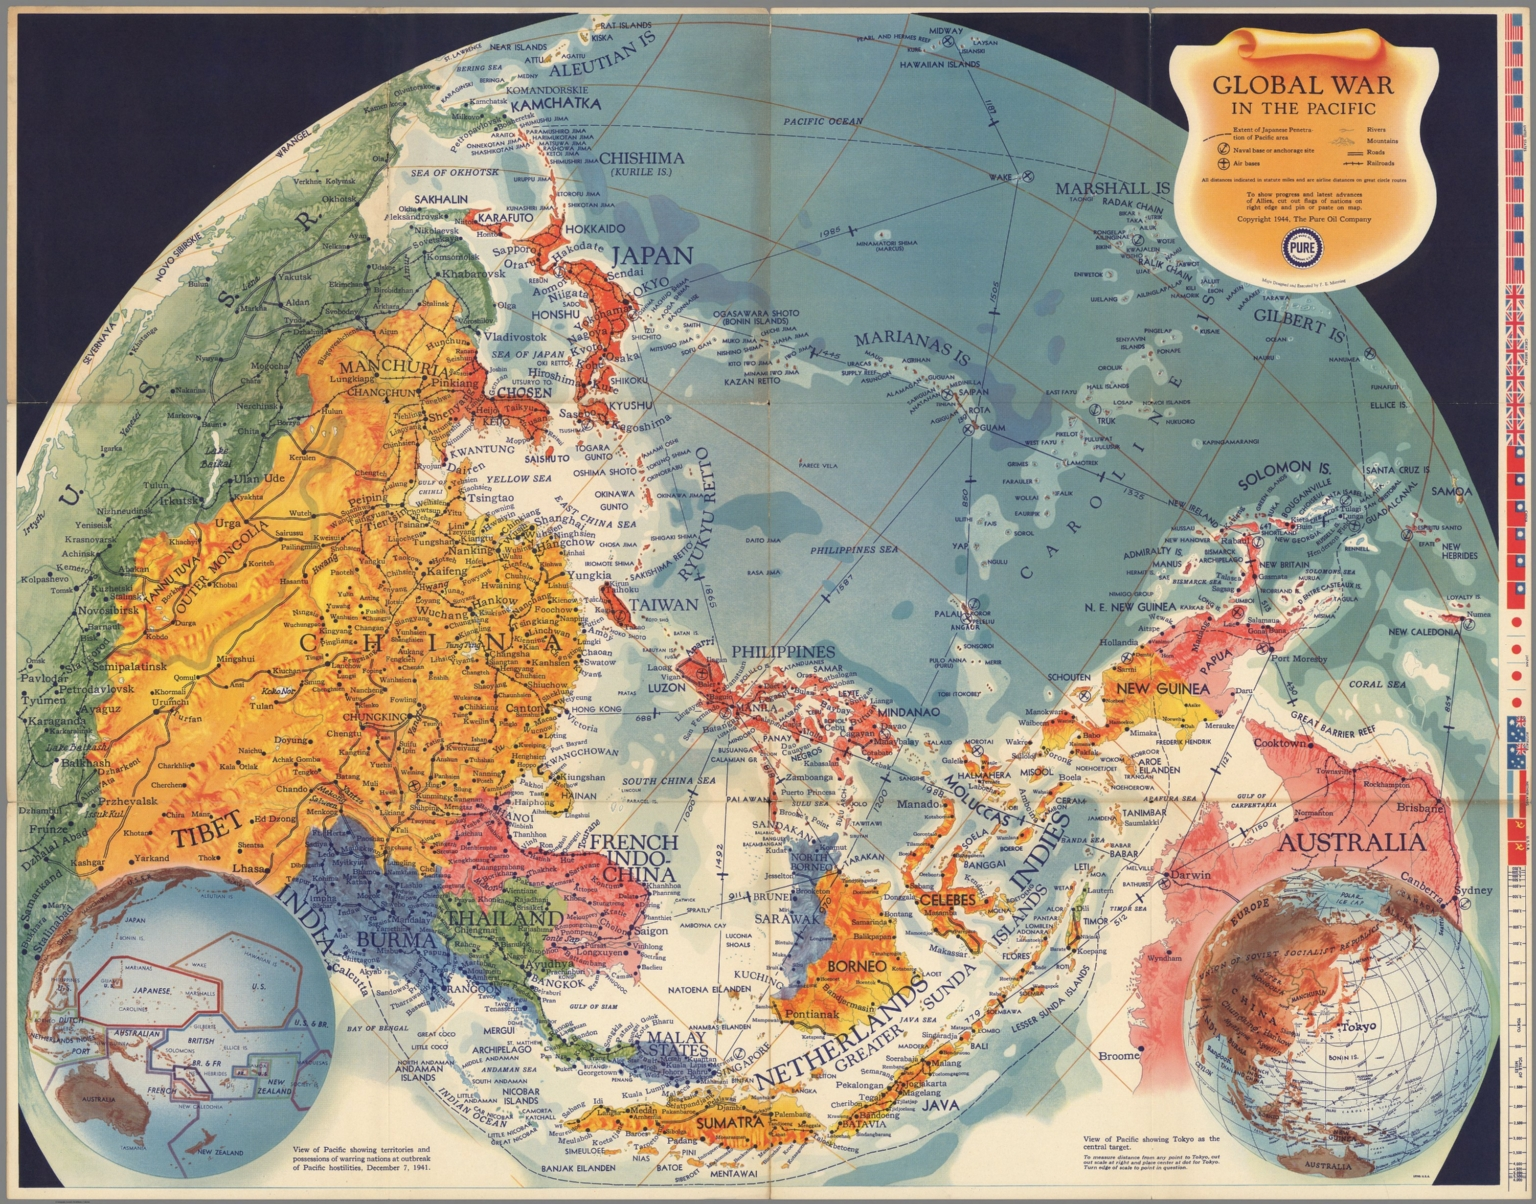 Global war in the Pacific - David Rumsey Historical Map Collection